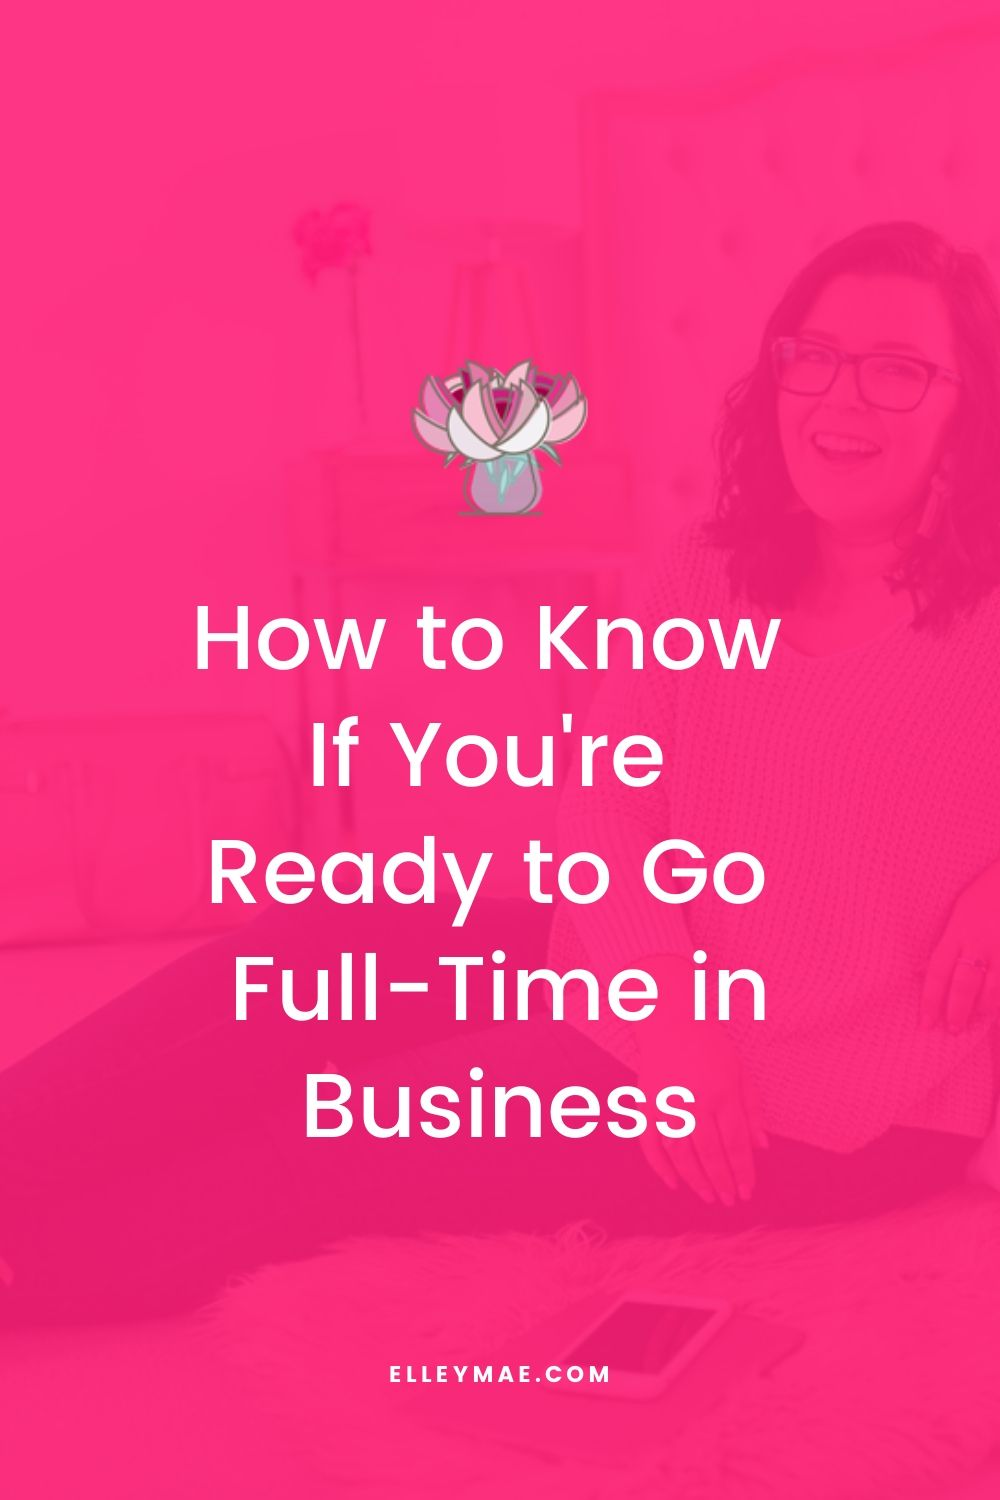 How to Know If You're Ready to Go Full-Time in Business